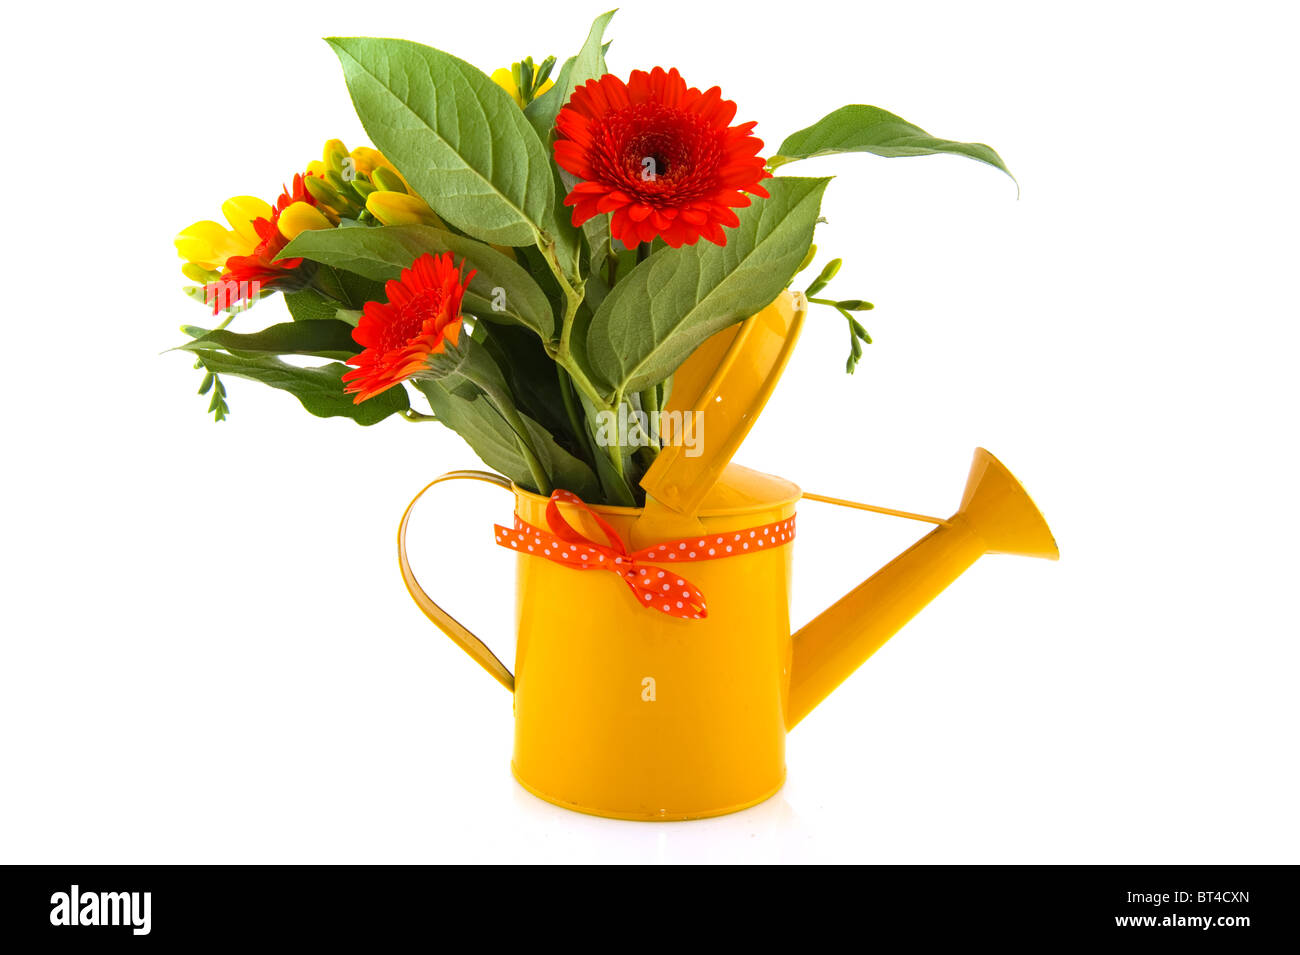 Flower bouquet with orange gerber and yellow freesia in watering can flower bouquet with orange gerber and yellow freesia in watering can izmirmasajfo Gallery